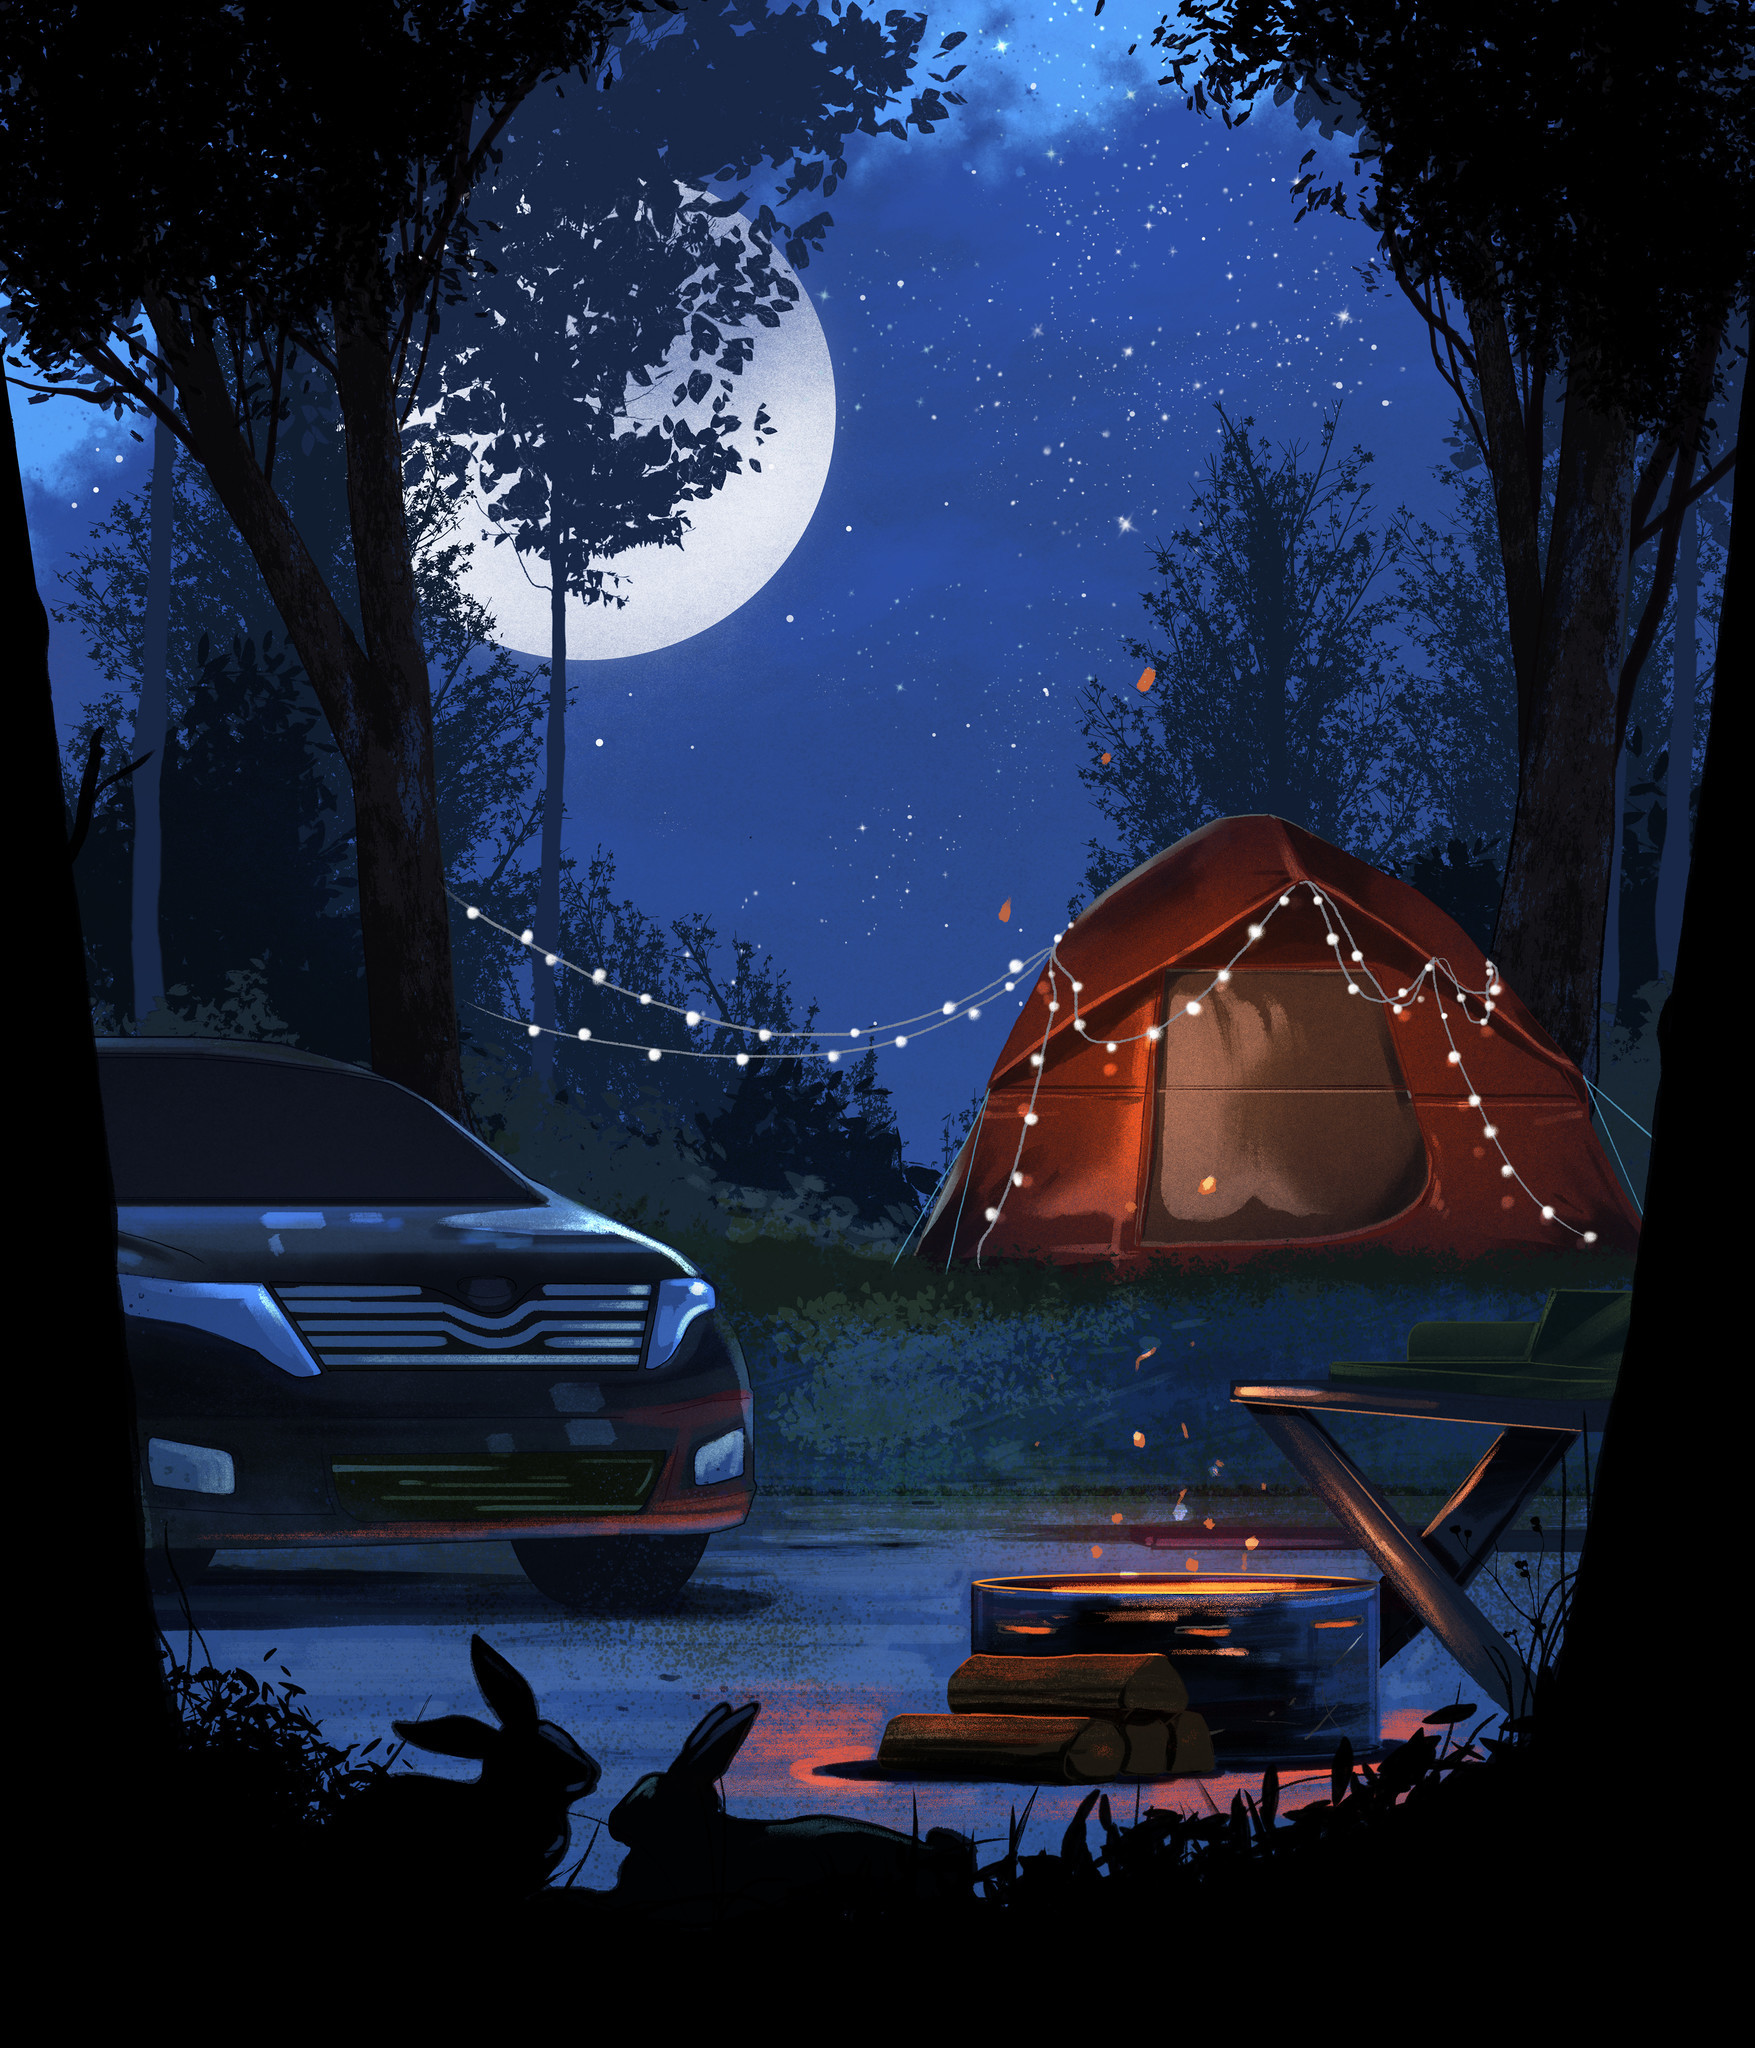 Illustration for a Travel section story on camping for newbies.